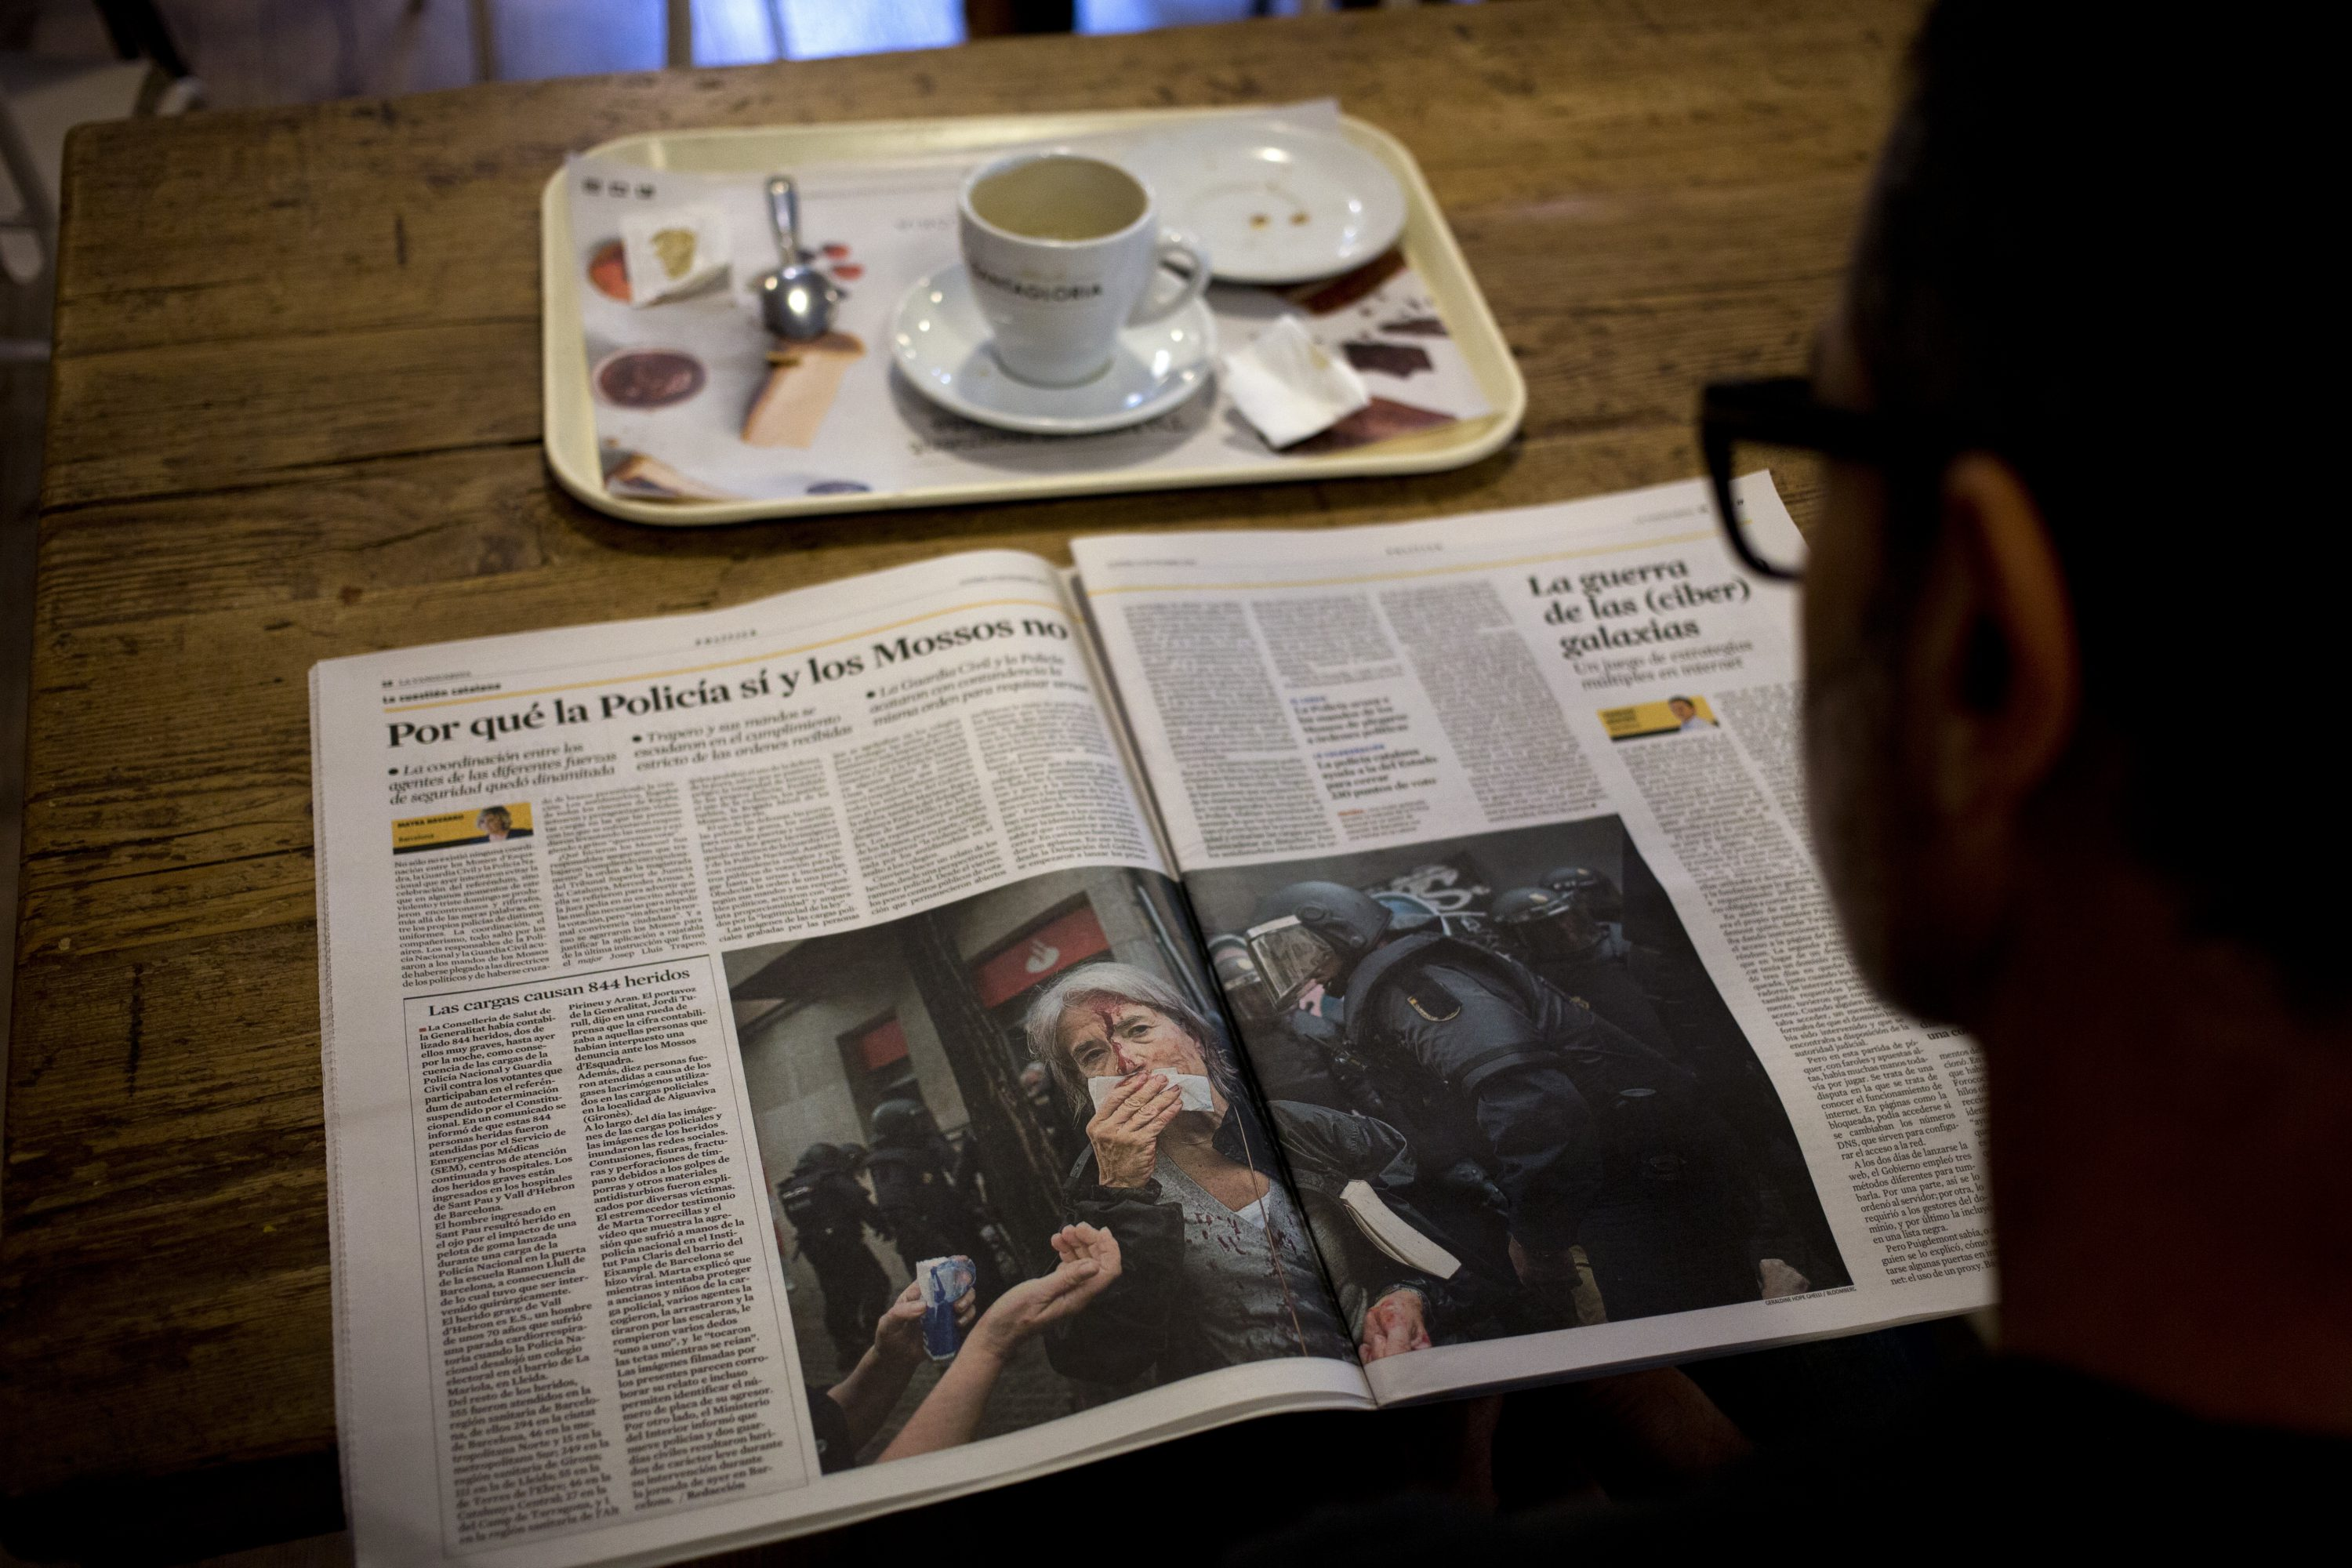 A man reads a newspaper featuring the news following a disputed referendum marred by violence in Barcelona, Spain, Monday, Oct. 2, 2017. Catalan leaders accused Spanish police of brutality and repression while the Spanish government praised the security forces for behaving firmly and proportionately. Videos and photographs of the police actions were on the front page of news media outlets around the world.